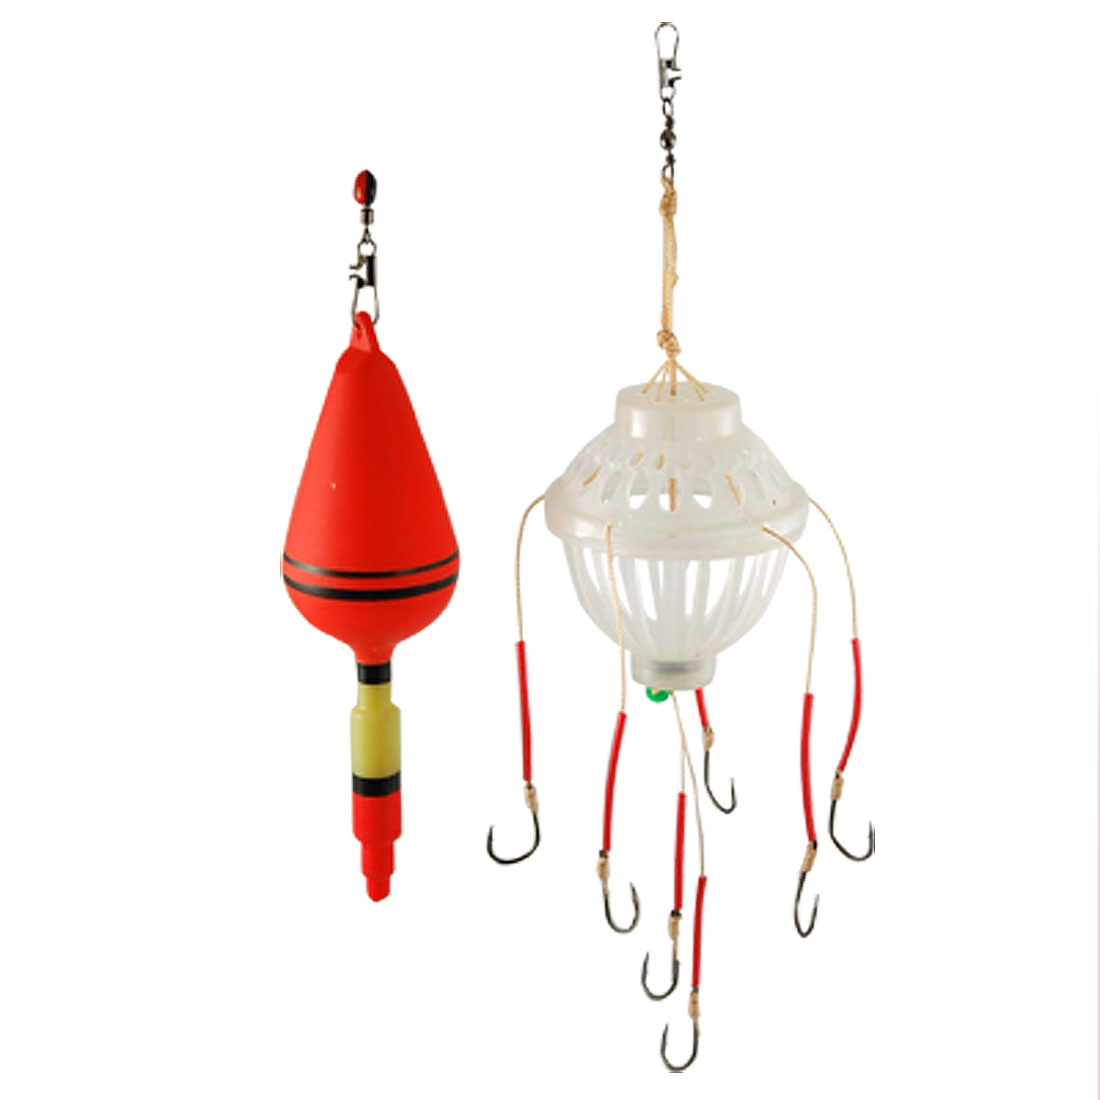 Pair 12# Fishing Lantern Hook Bobber Stopper Weight Set